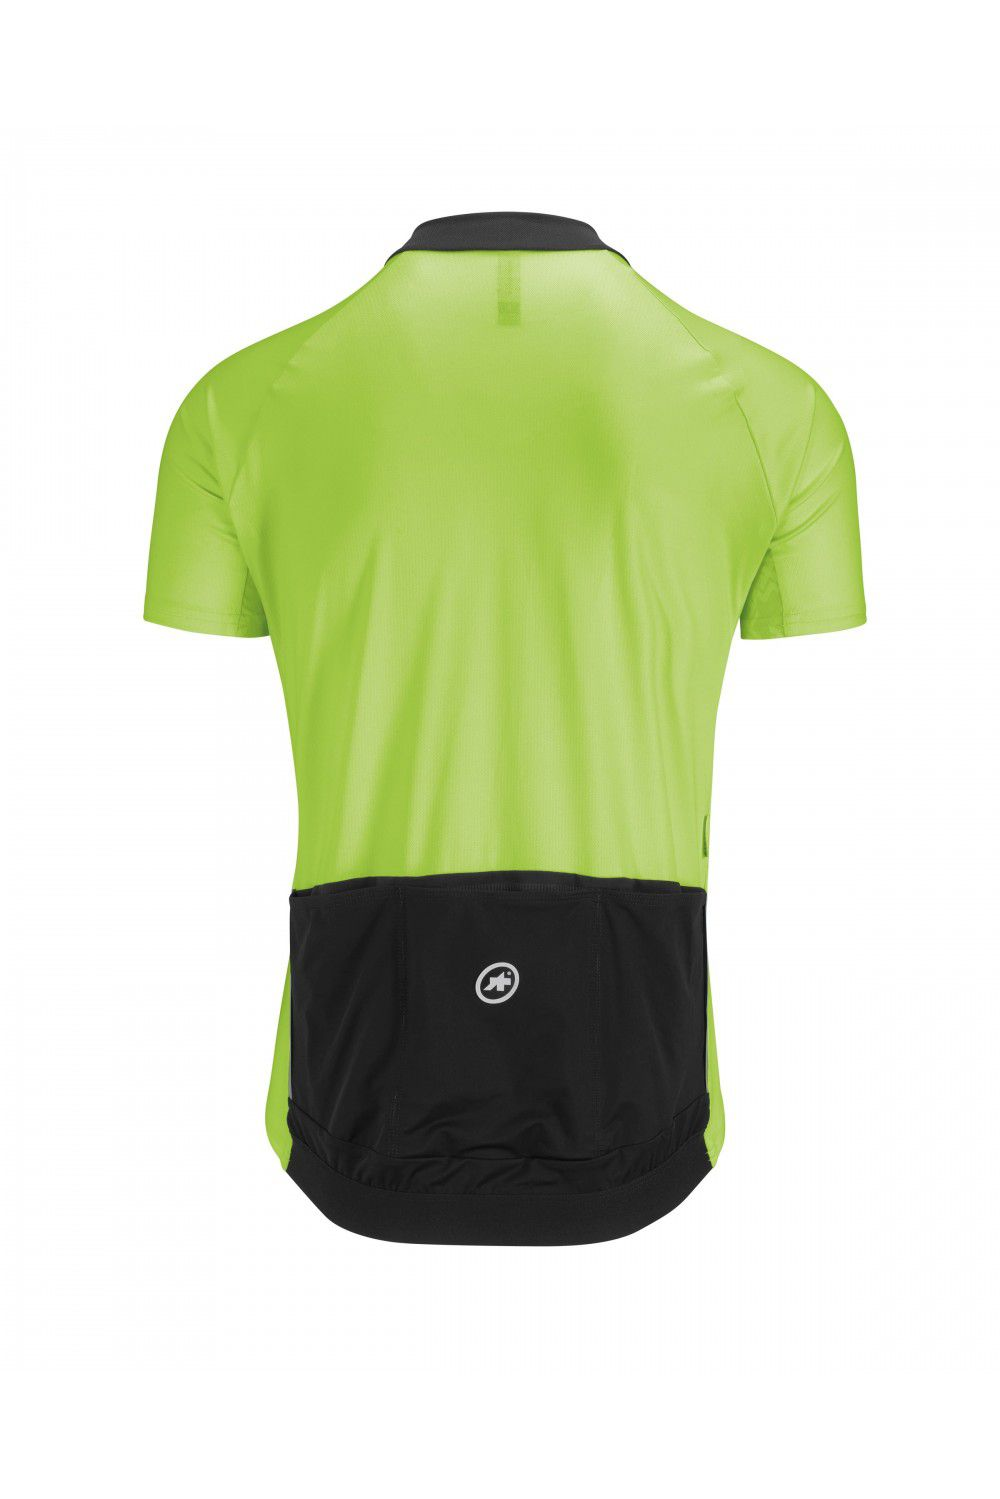 Assos Maillot Mille GT Short Sleeve Jersey (Visibility Green)